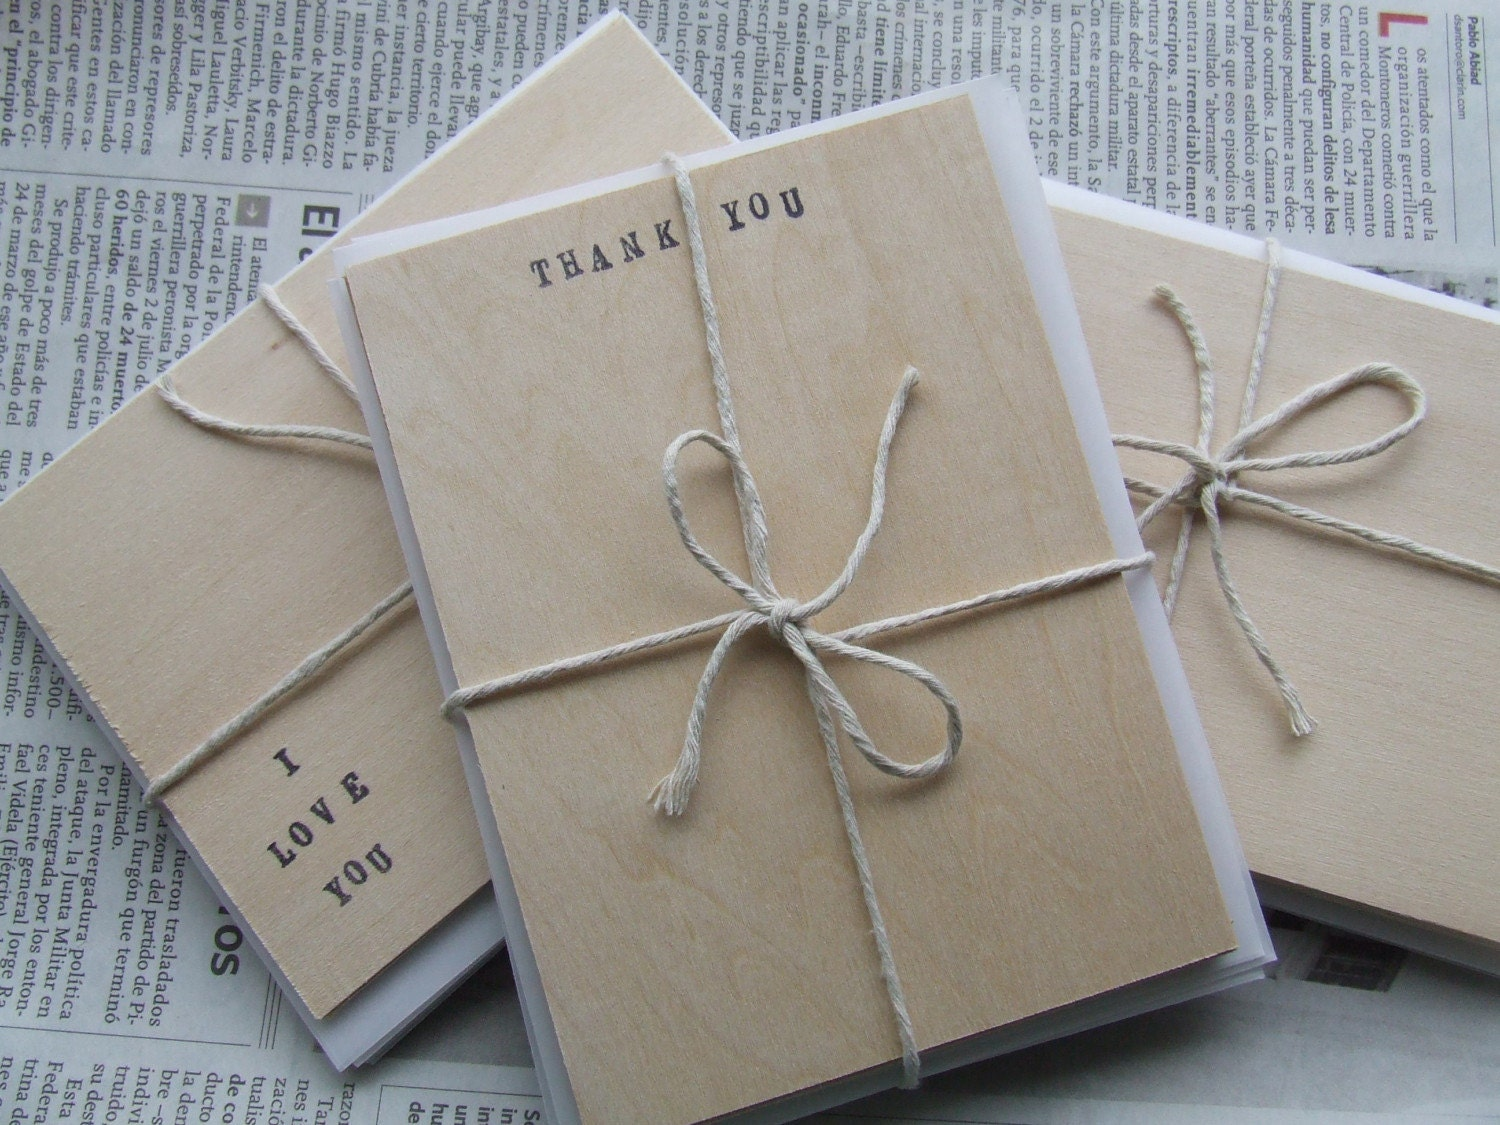 THANK YOU wood stationery set of five note cards and envelopes by Paloma's Nest